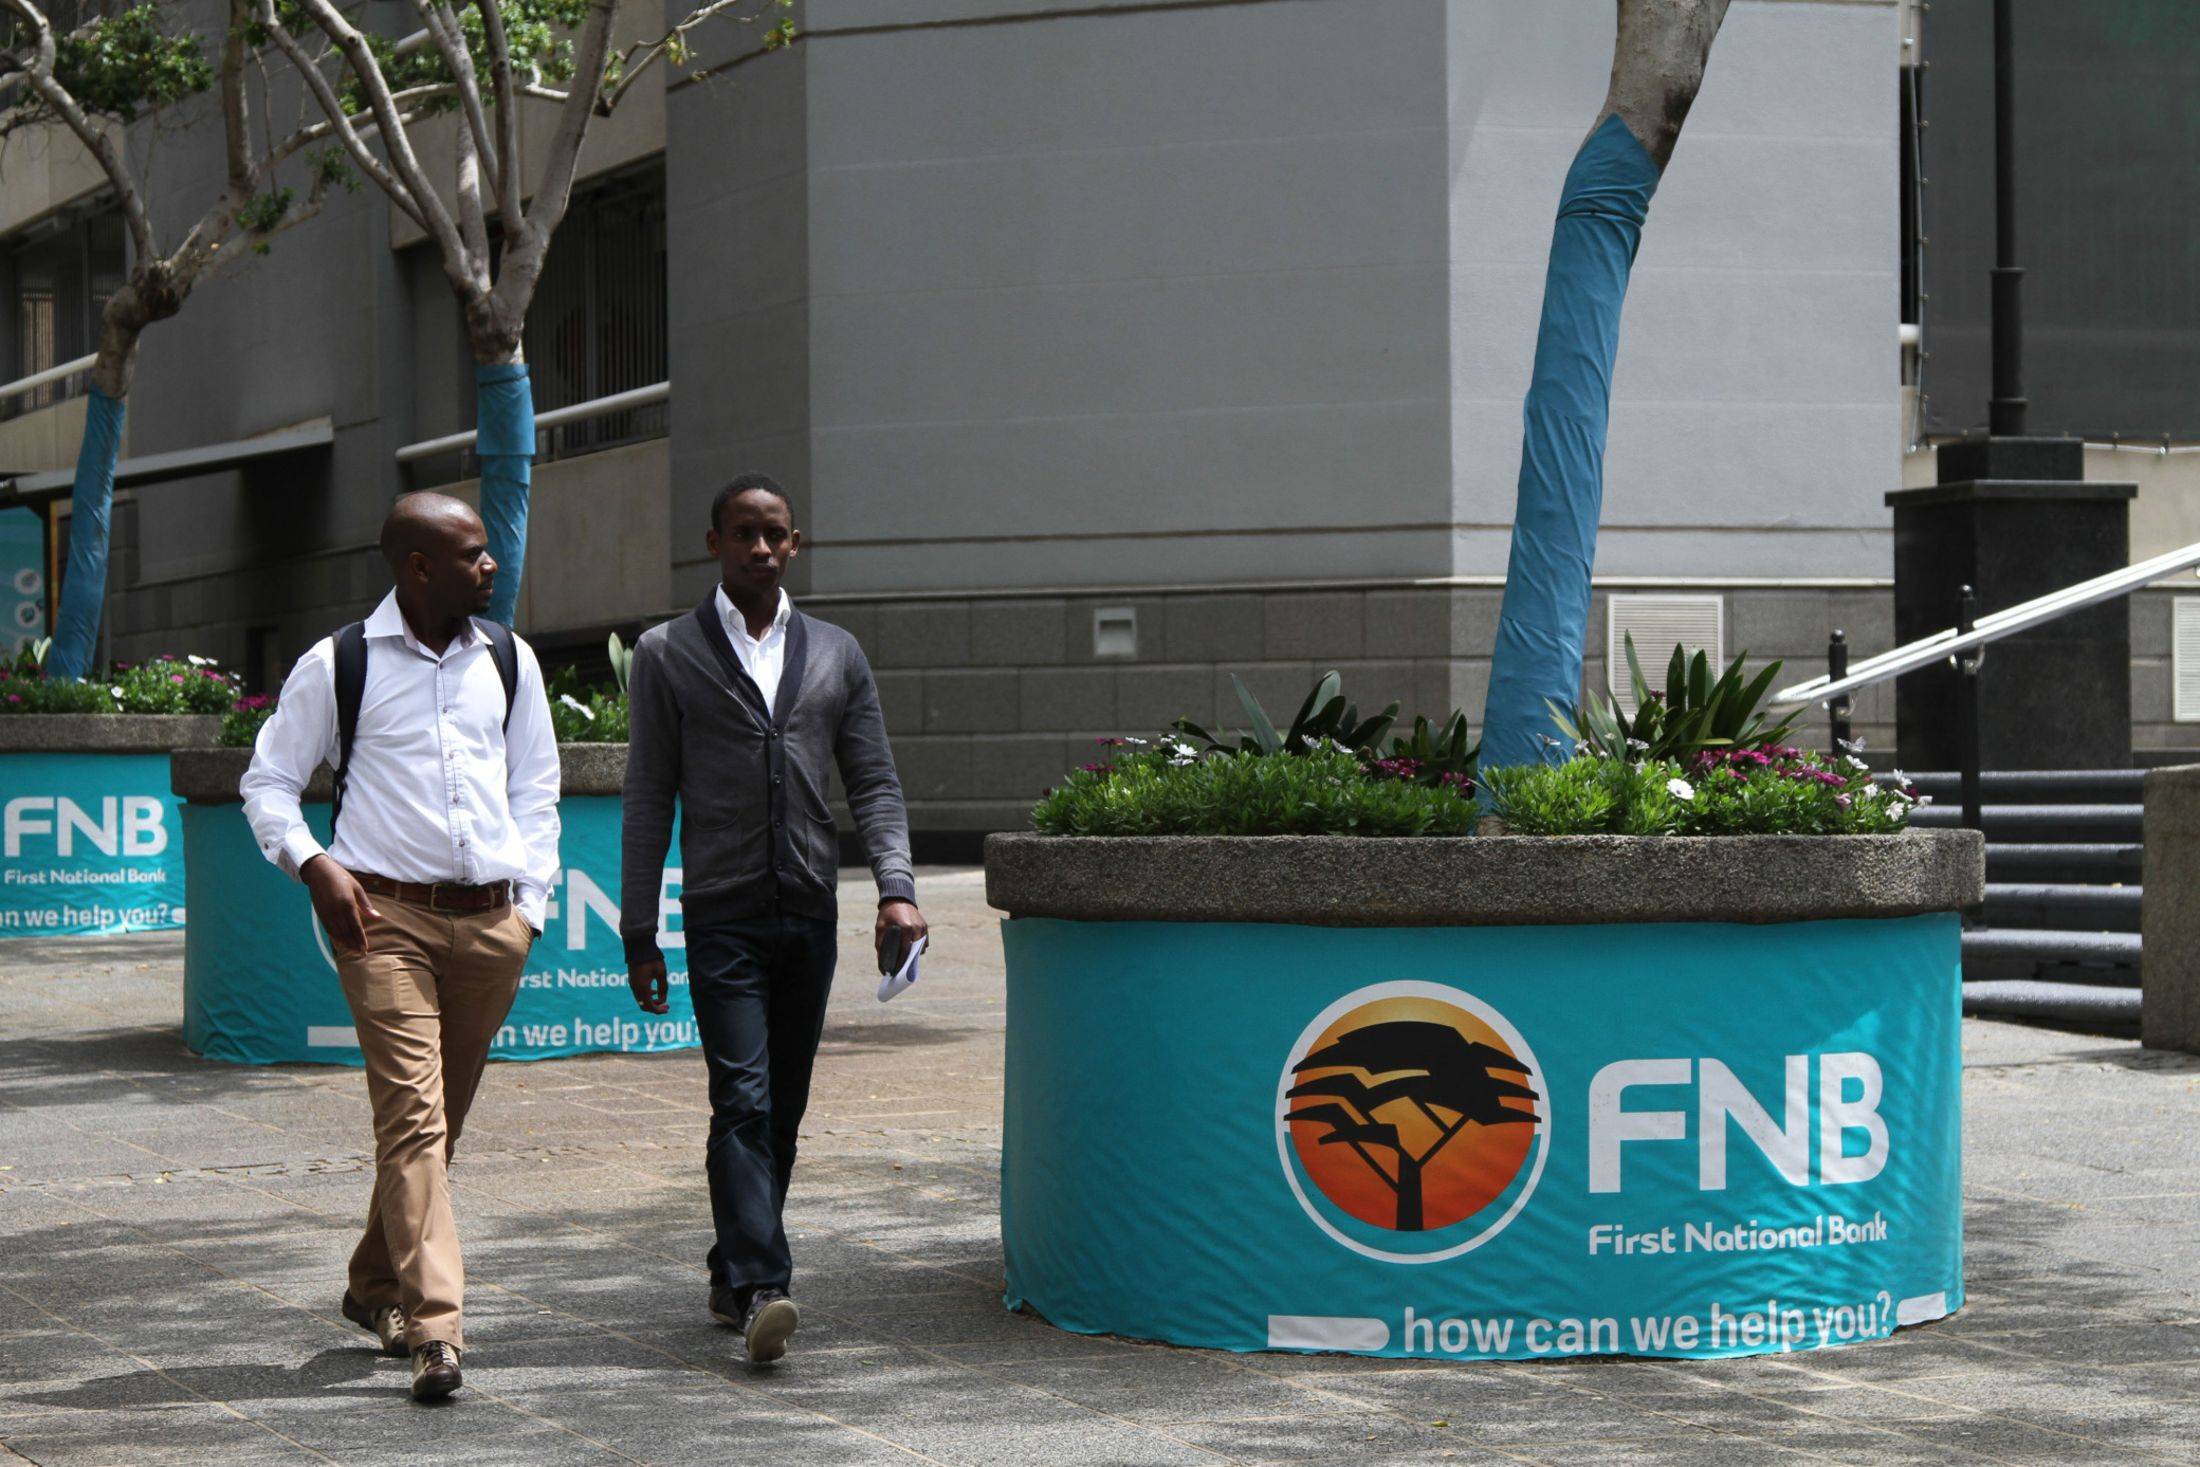 Pedestrians pass street advertising for First National Bank (FNB), a division of FirstRand Bank Ltd., in Johannesburg.